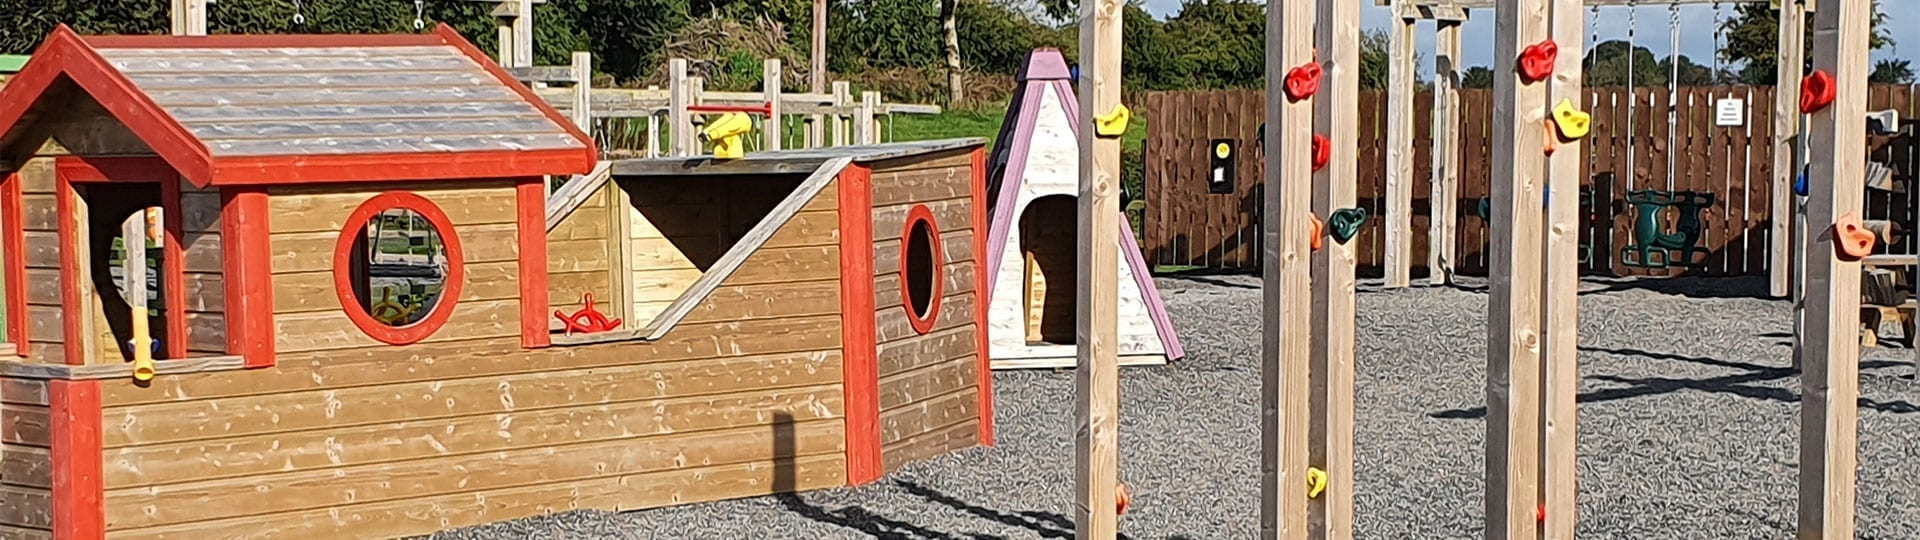 Banner Wooden boat climbing frame playground Mellowes Adventure Centre and Childcare serving Meath and Westmeath